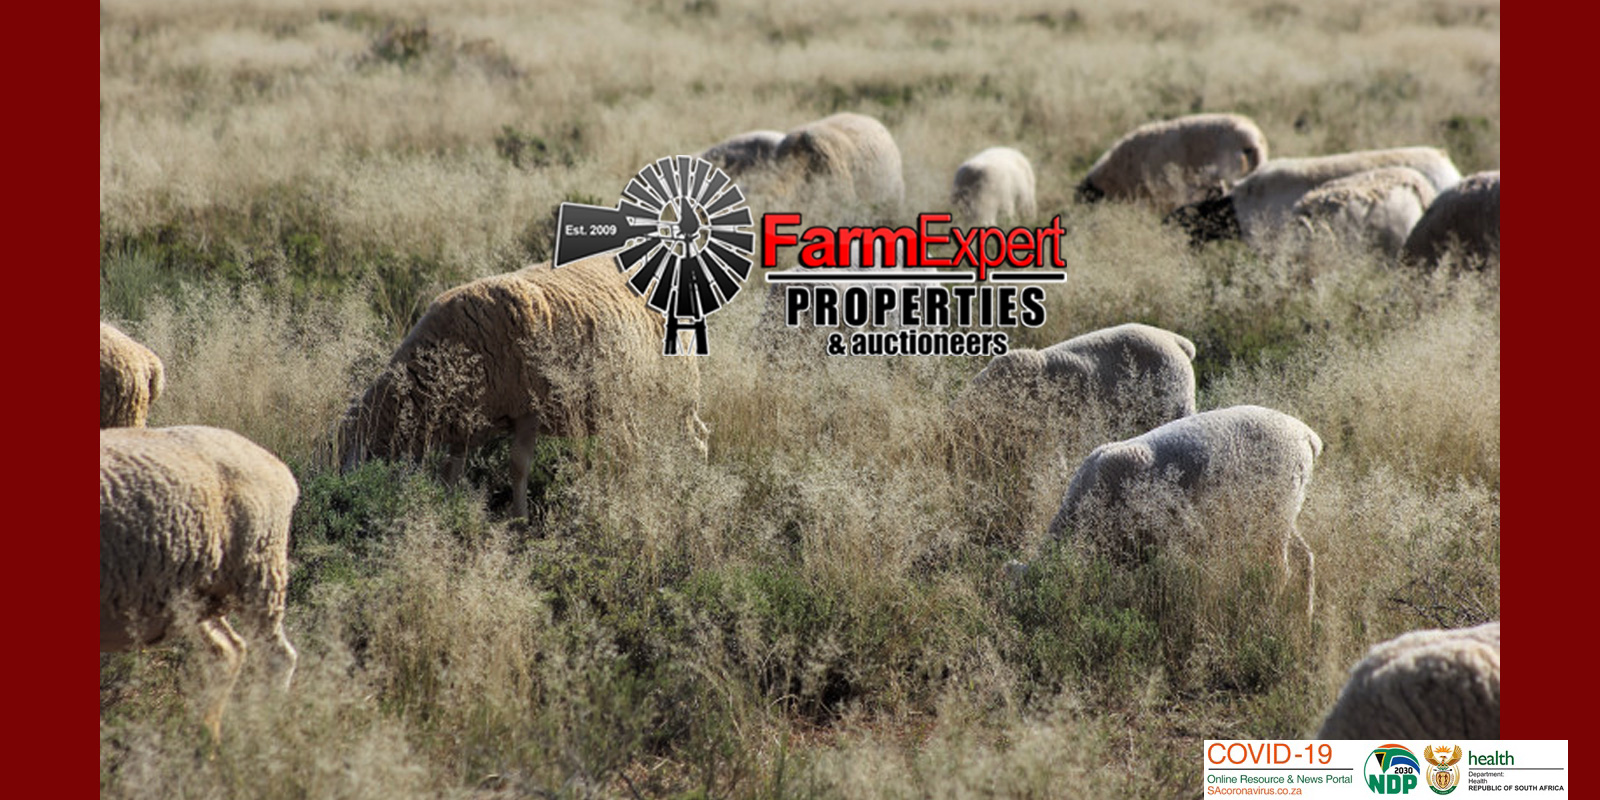 Specialists in Agricultural Sales